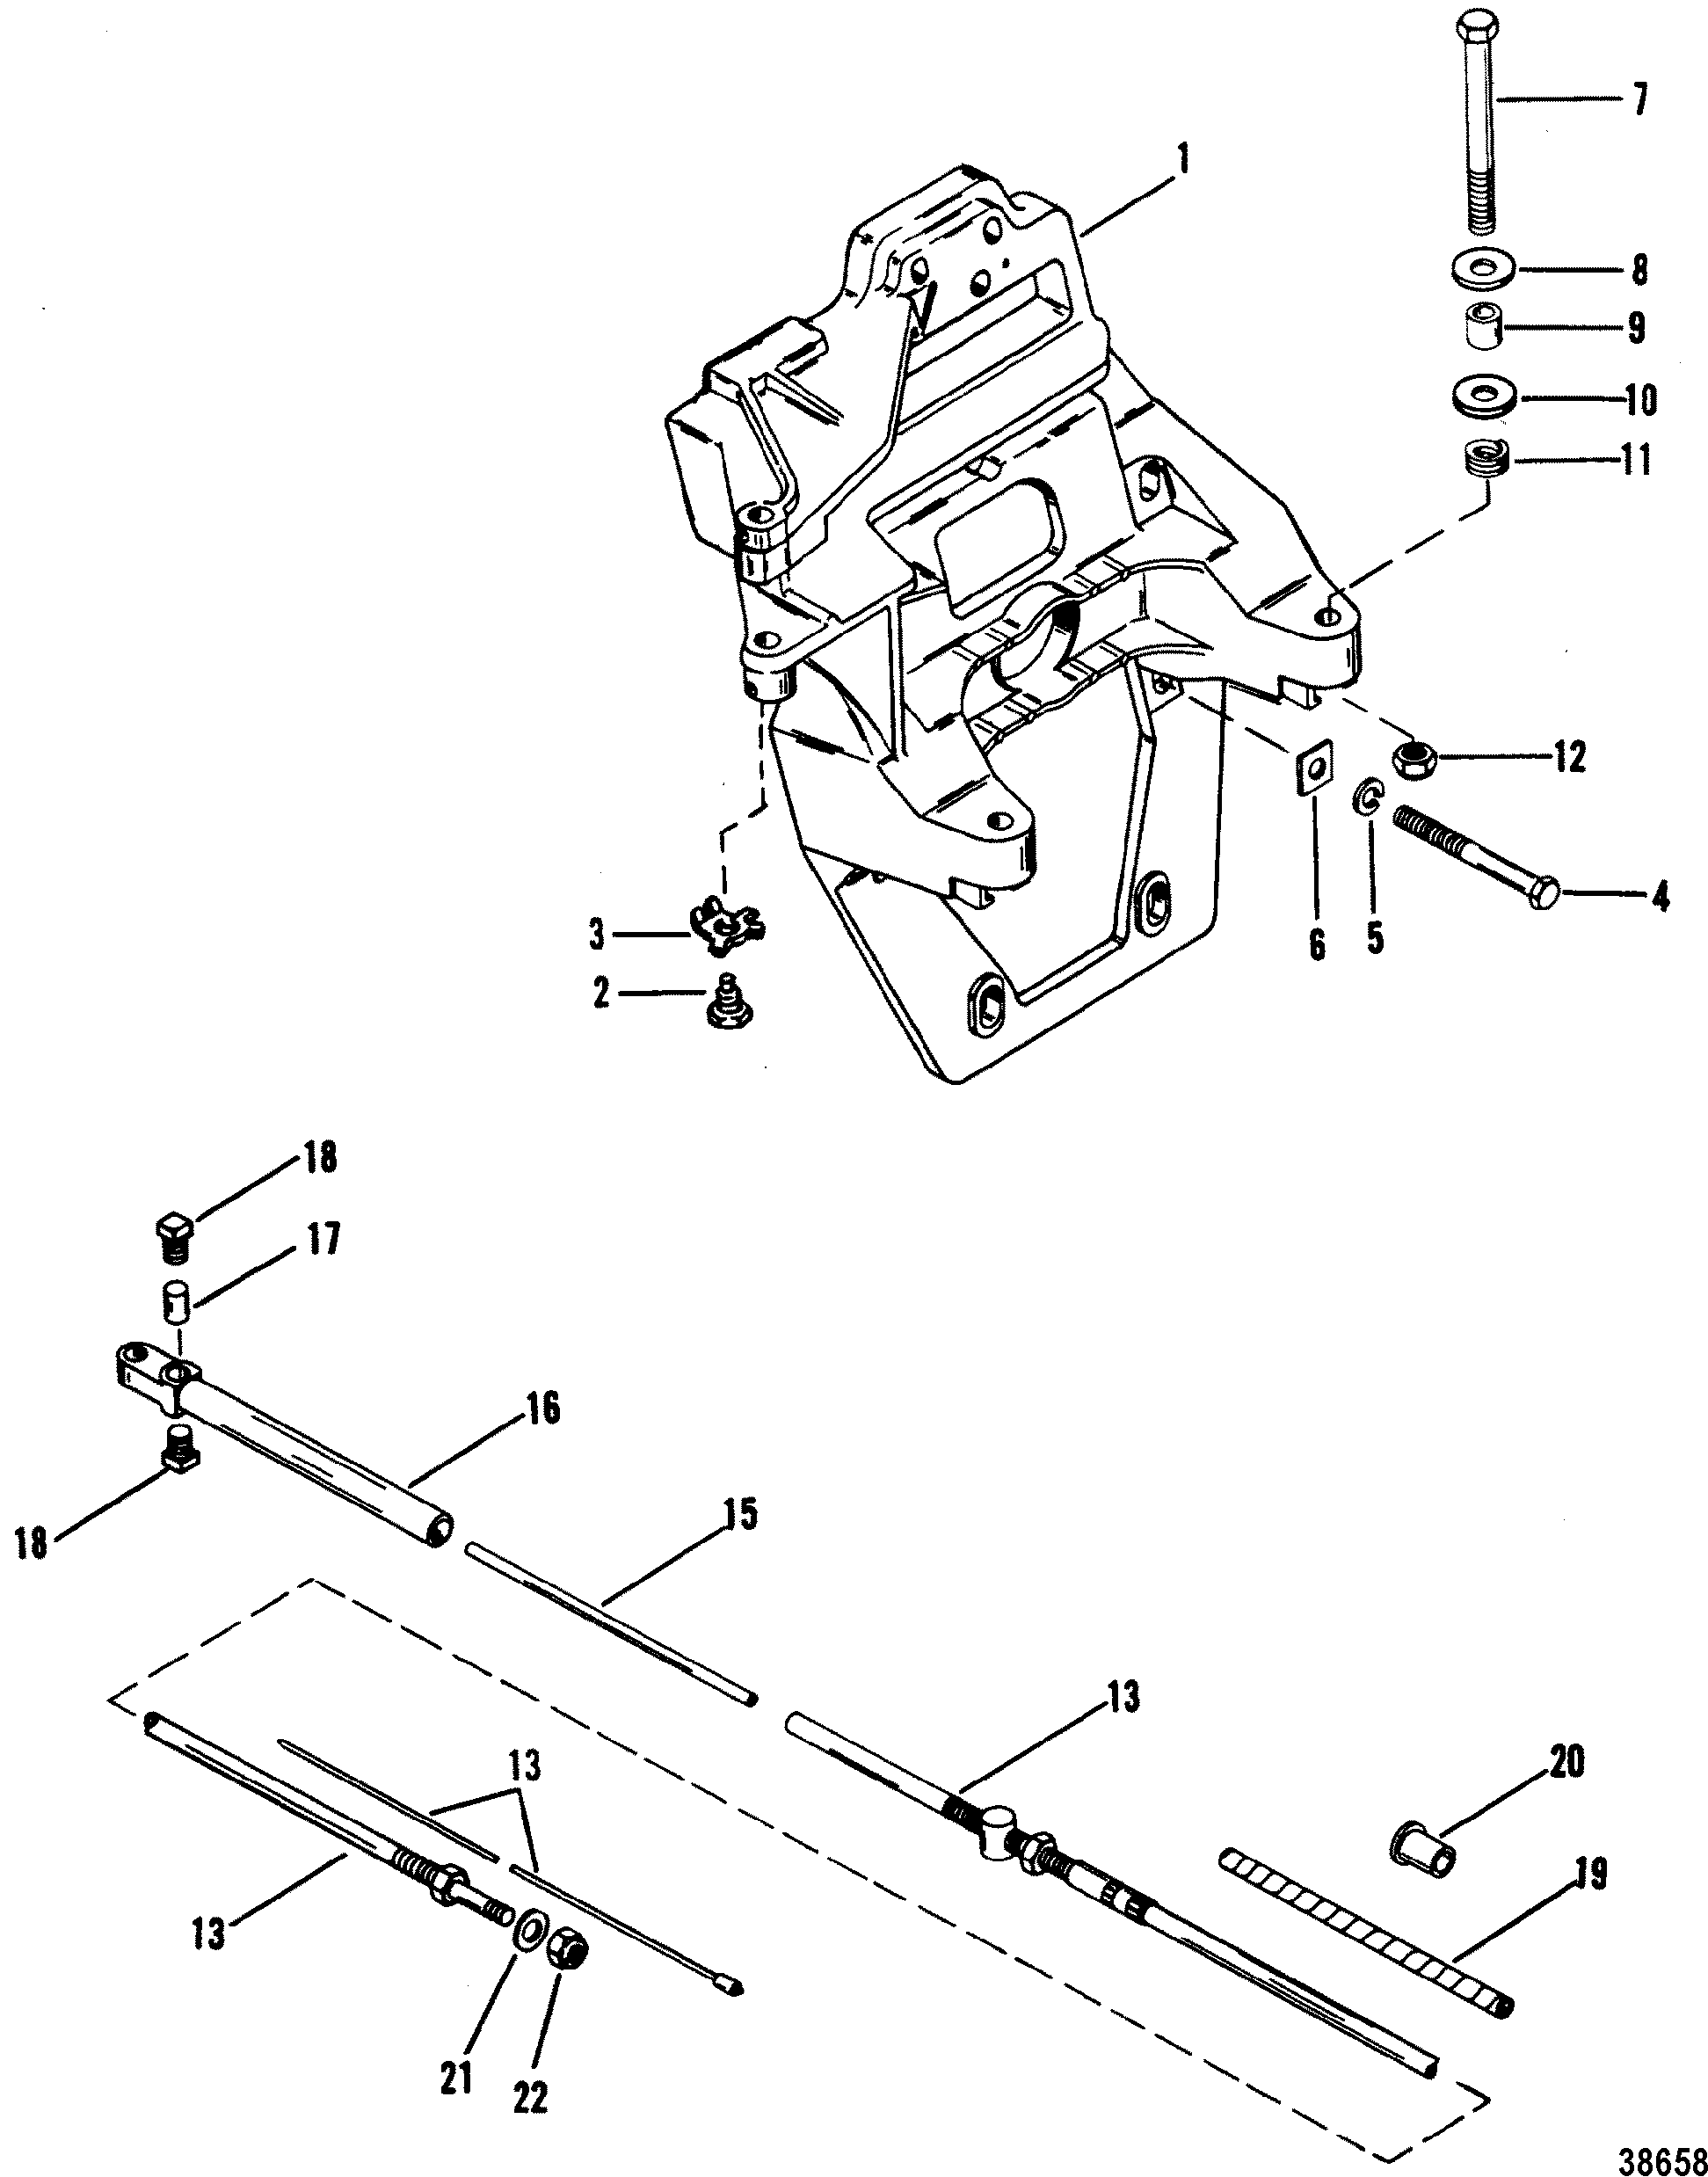 Transom Plate And Shift Cable For Mercruiser Bravo I Ii Iii Sterndrive And Transom Assembly